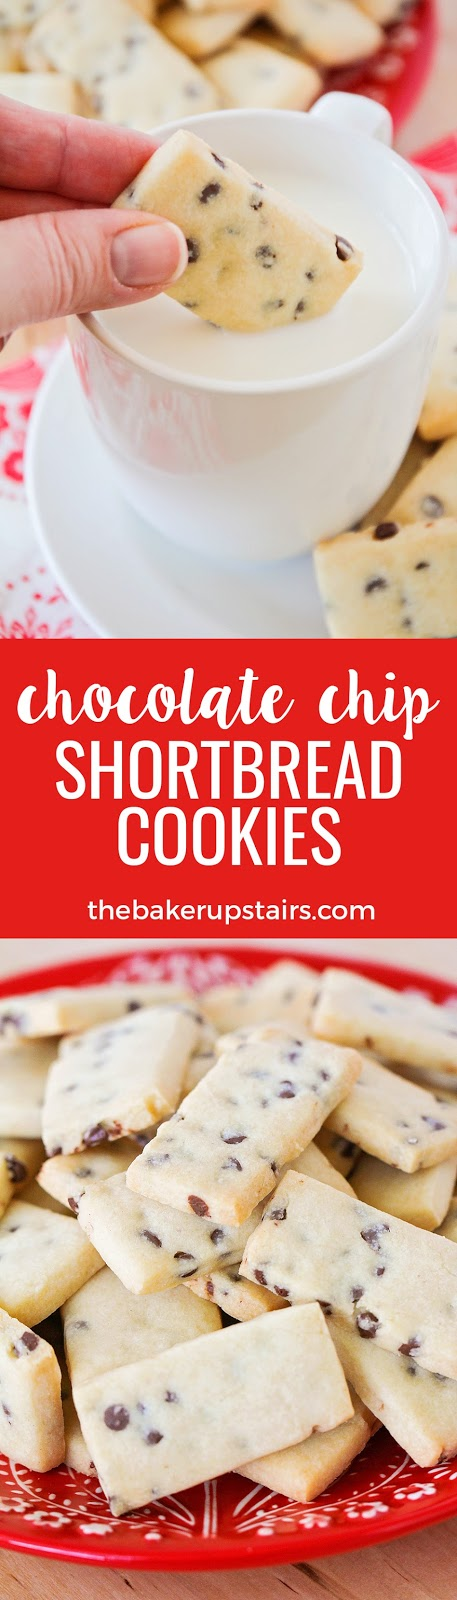 These crisp and buttery chocolate chip shortbread cookies are perfect for dunking in milk or hot chocolate!